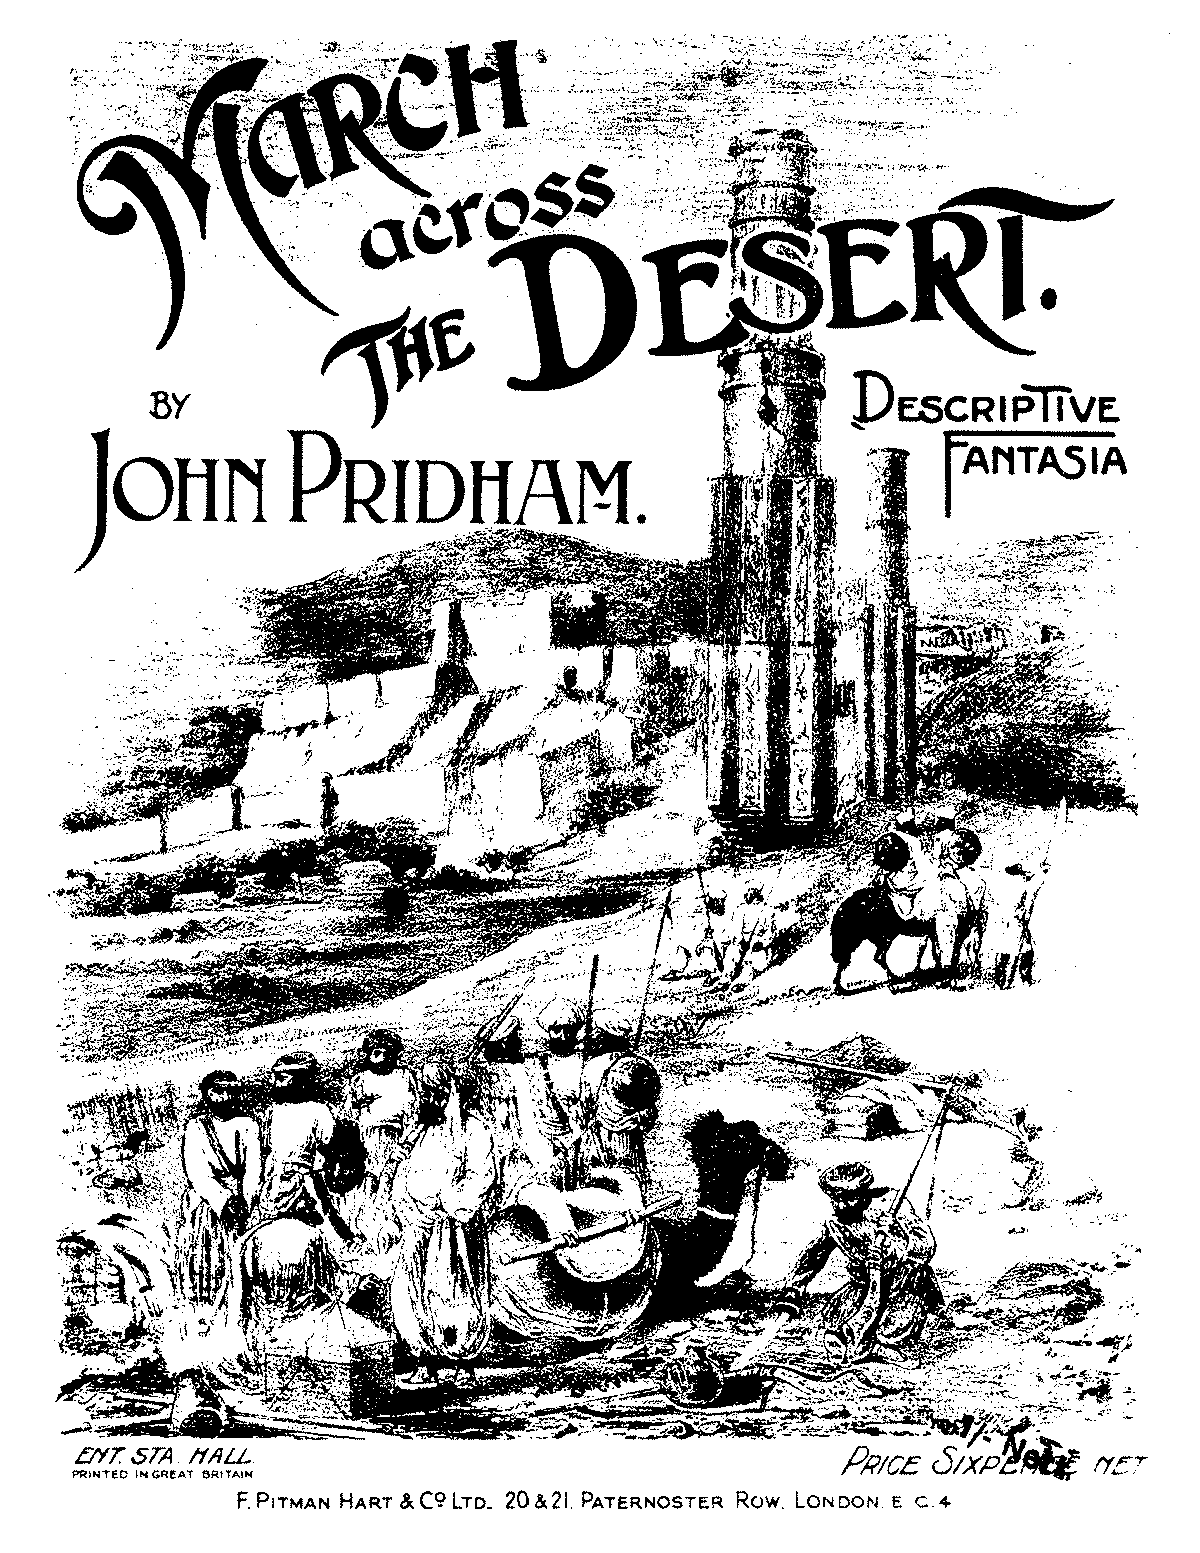 PMLP673032-Pridham MarchacrosstheDesert.pdf